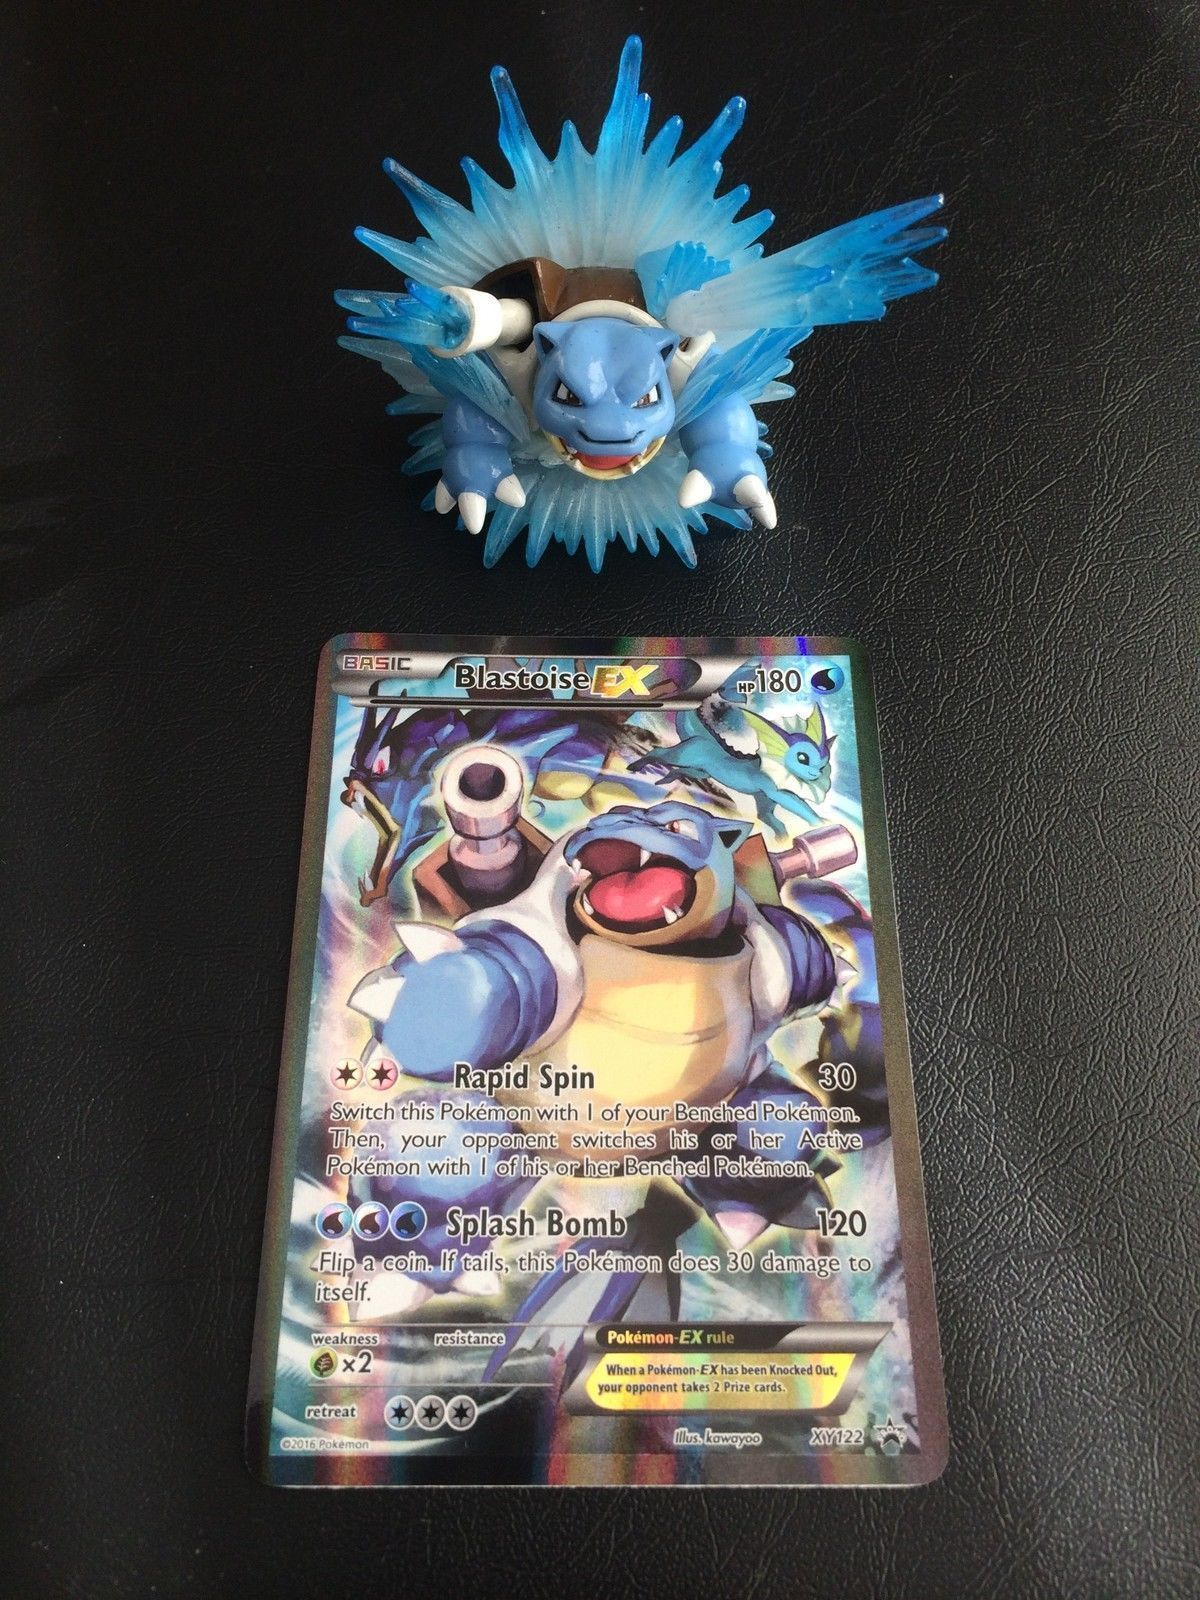 Pokemon TCG Generations Elite Trainer Box + Blastoise EX Red and Blue Collection